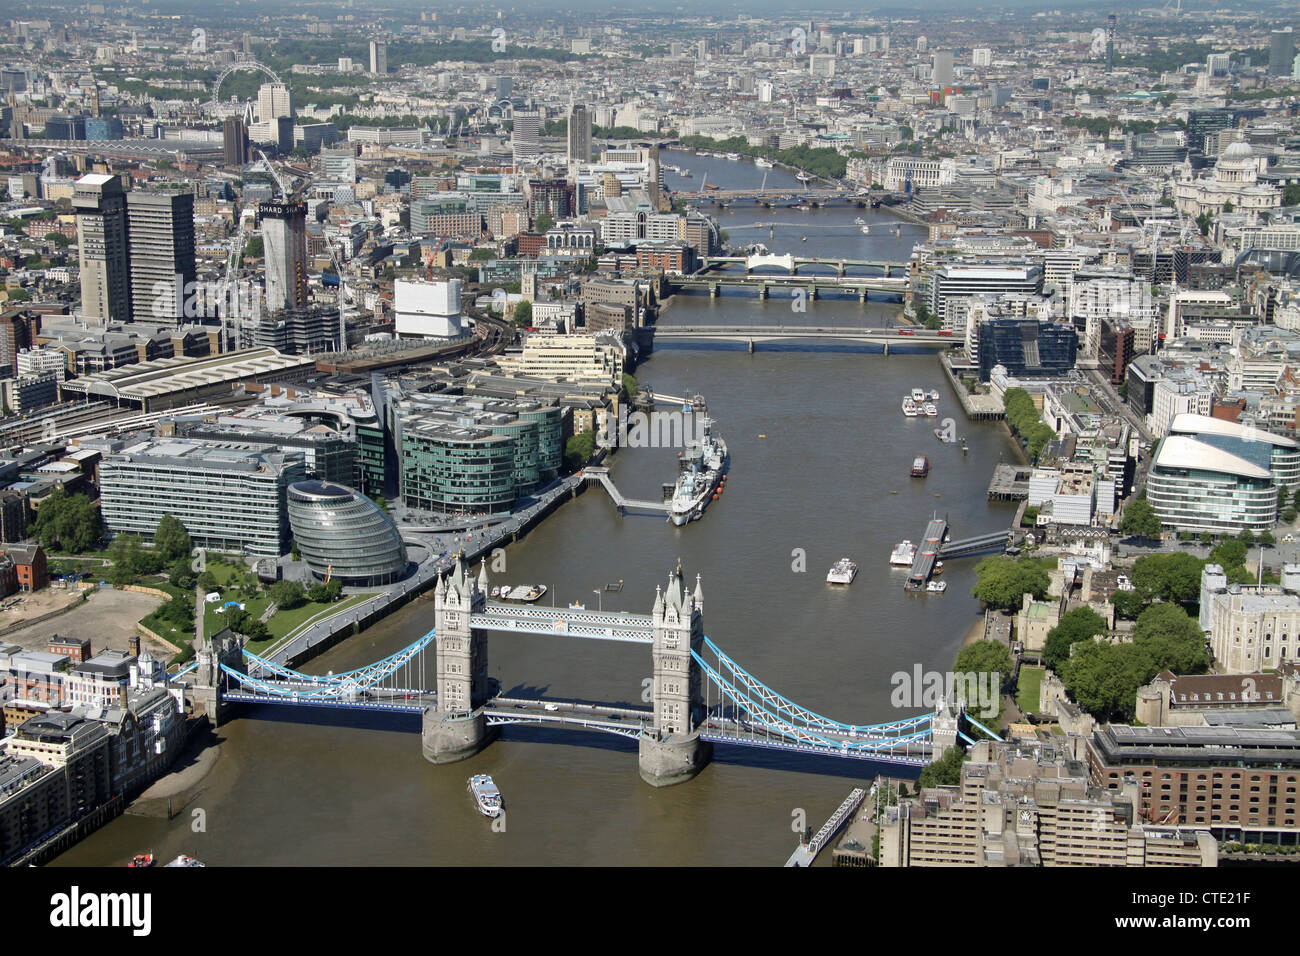 aerial view of London centre with the River Thames, Tower Bridge and County Hall - Stock Image